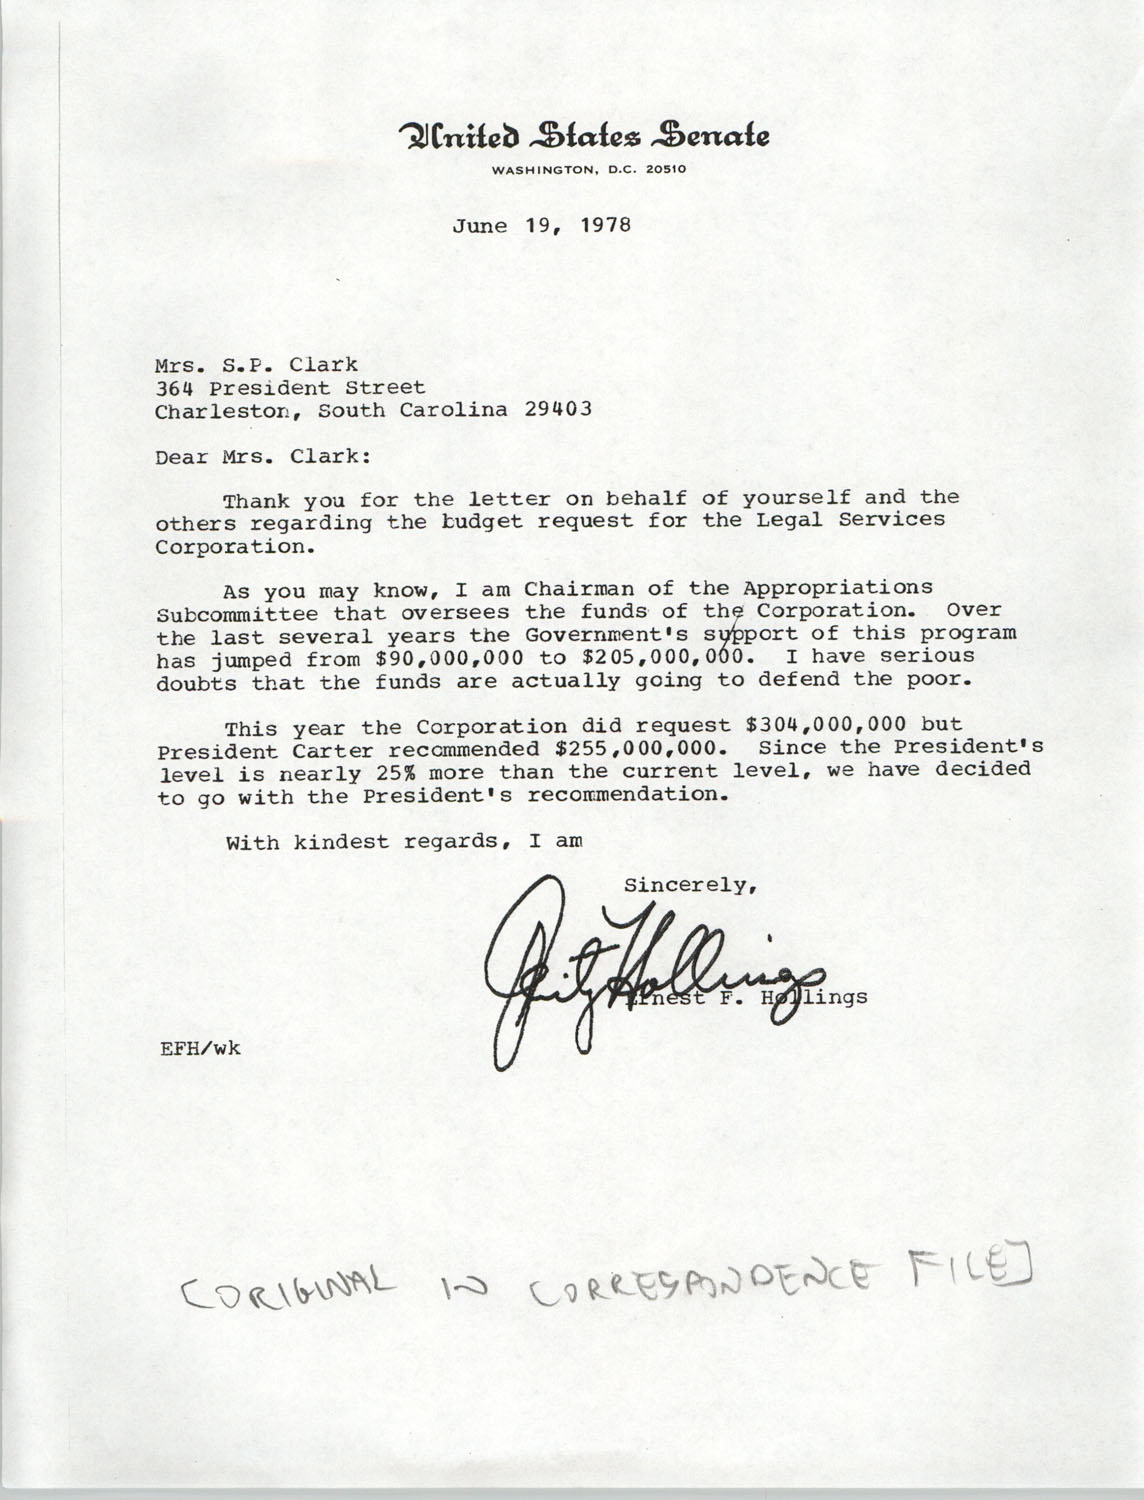 Letter from Ernest F. Hollings to Septima P. Clark, June 19, 1978